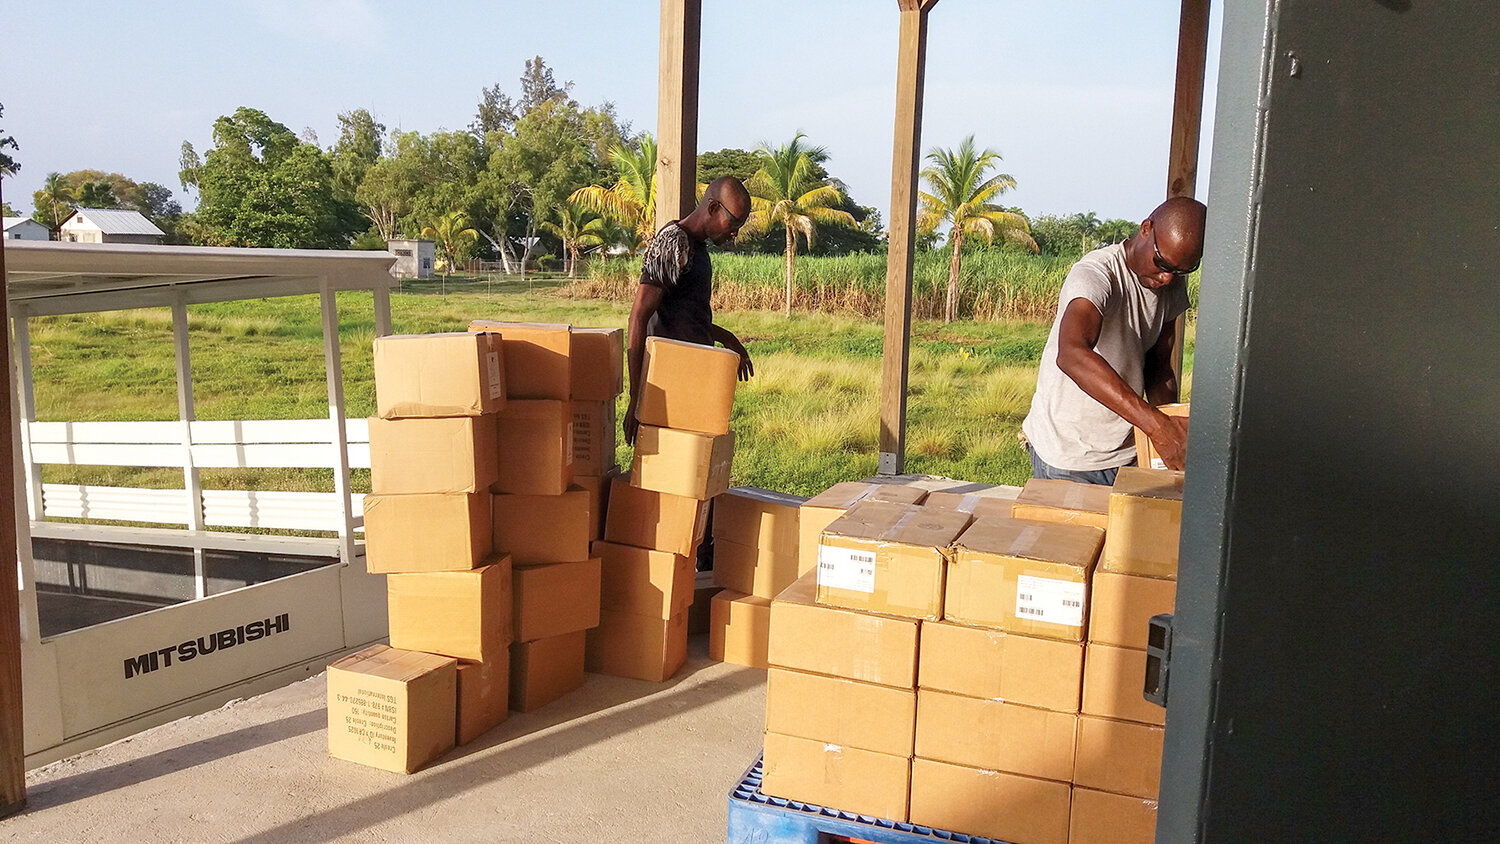 Our warehouse in Haiti is ready to receive the delivery of library books. We will plan to purchase them as funding is provided and ship them to Haiti on cargo containers.